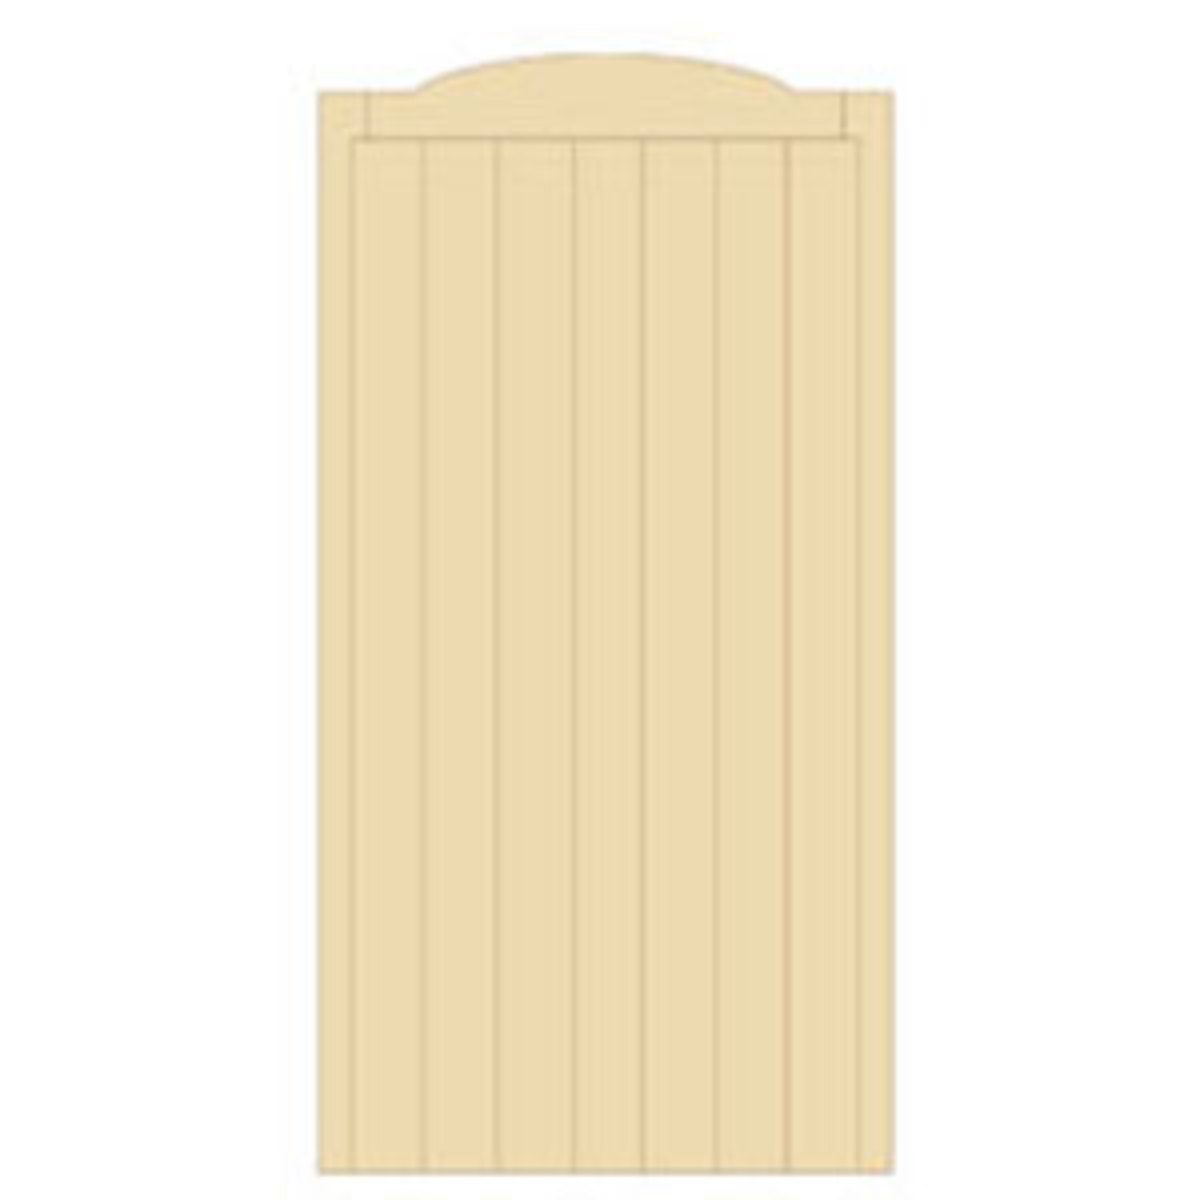 Wooden gates - Tall single side entrance wooden gates - Cherbourne gate